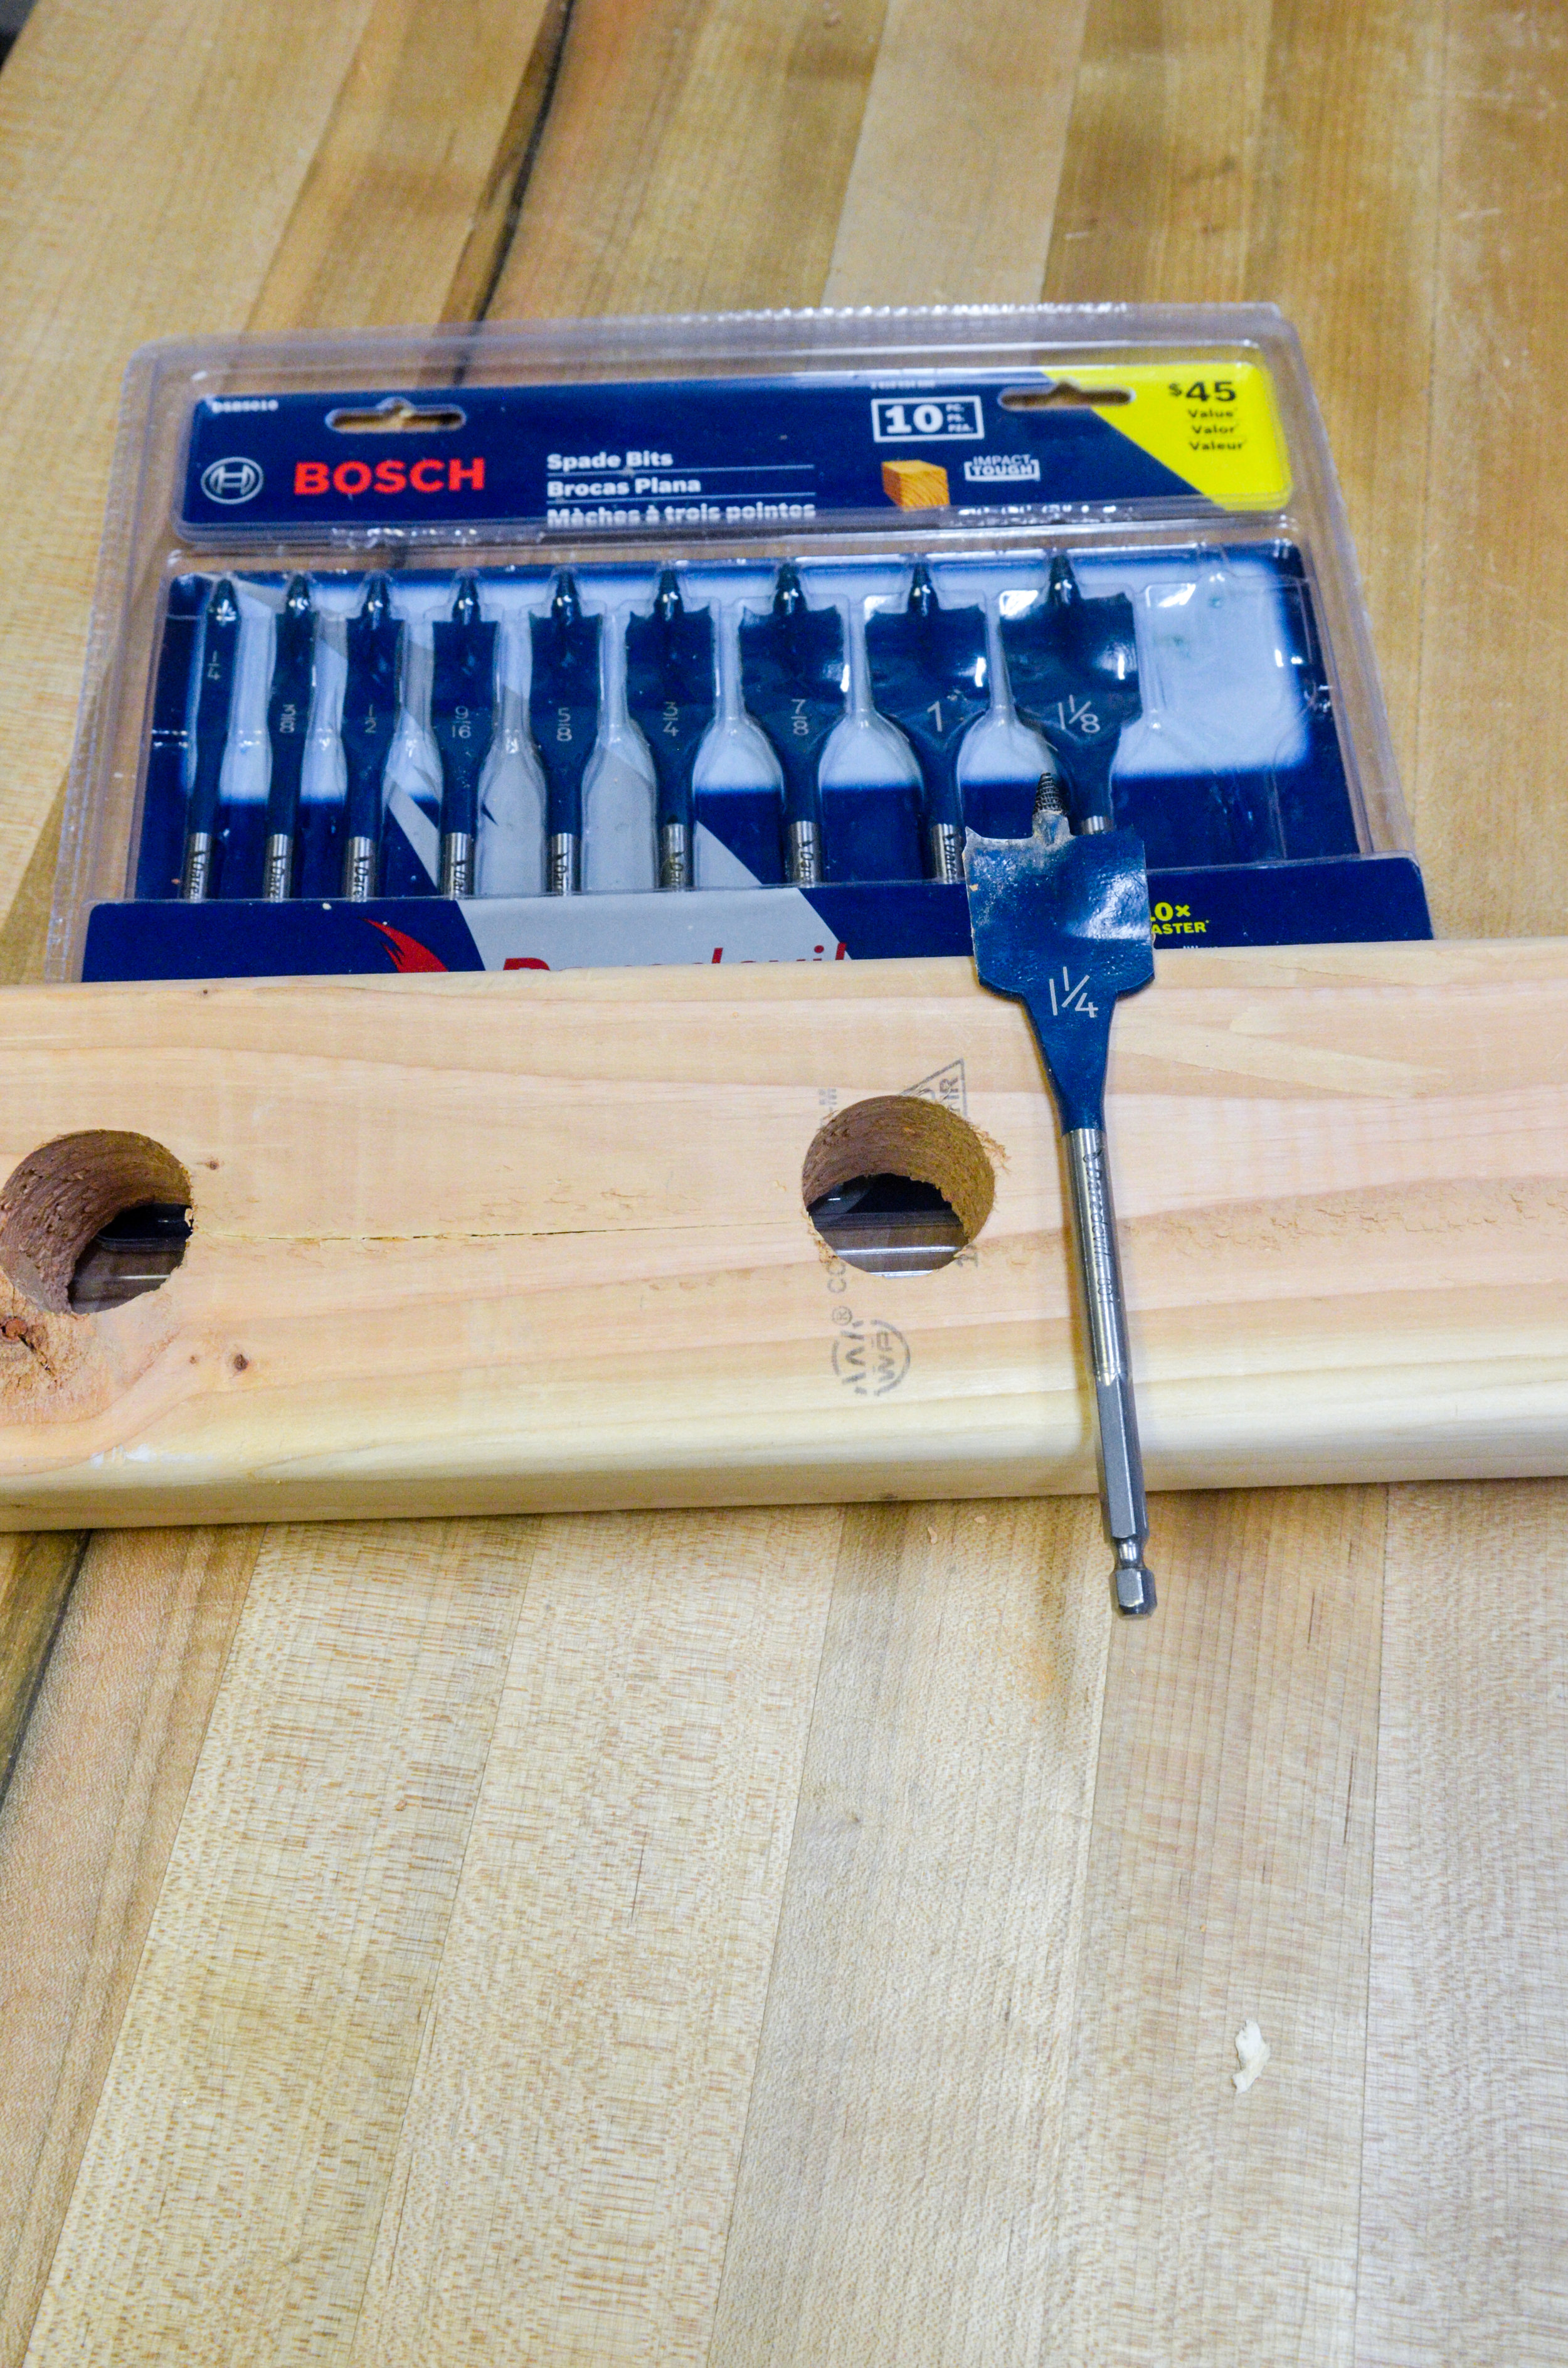 The Bosch Davedevil spade bits performed better than spade bits that I've used in the past.